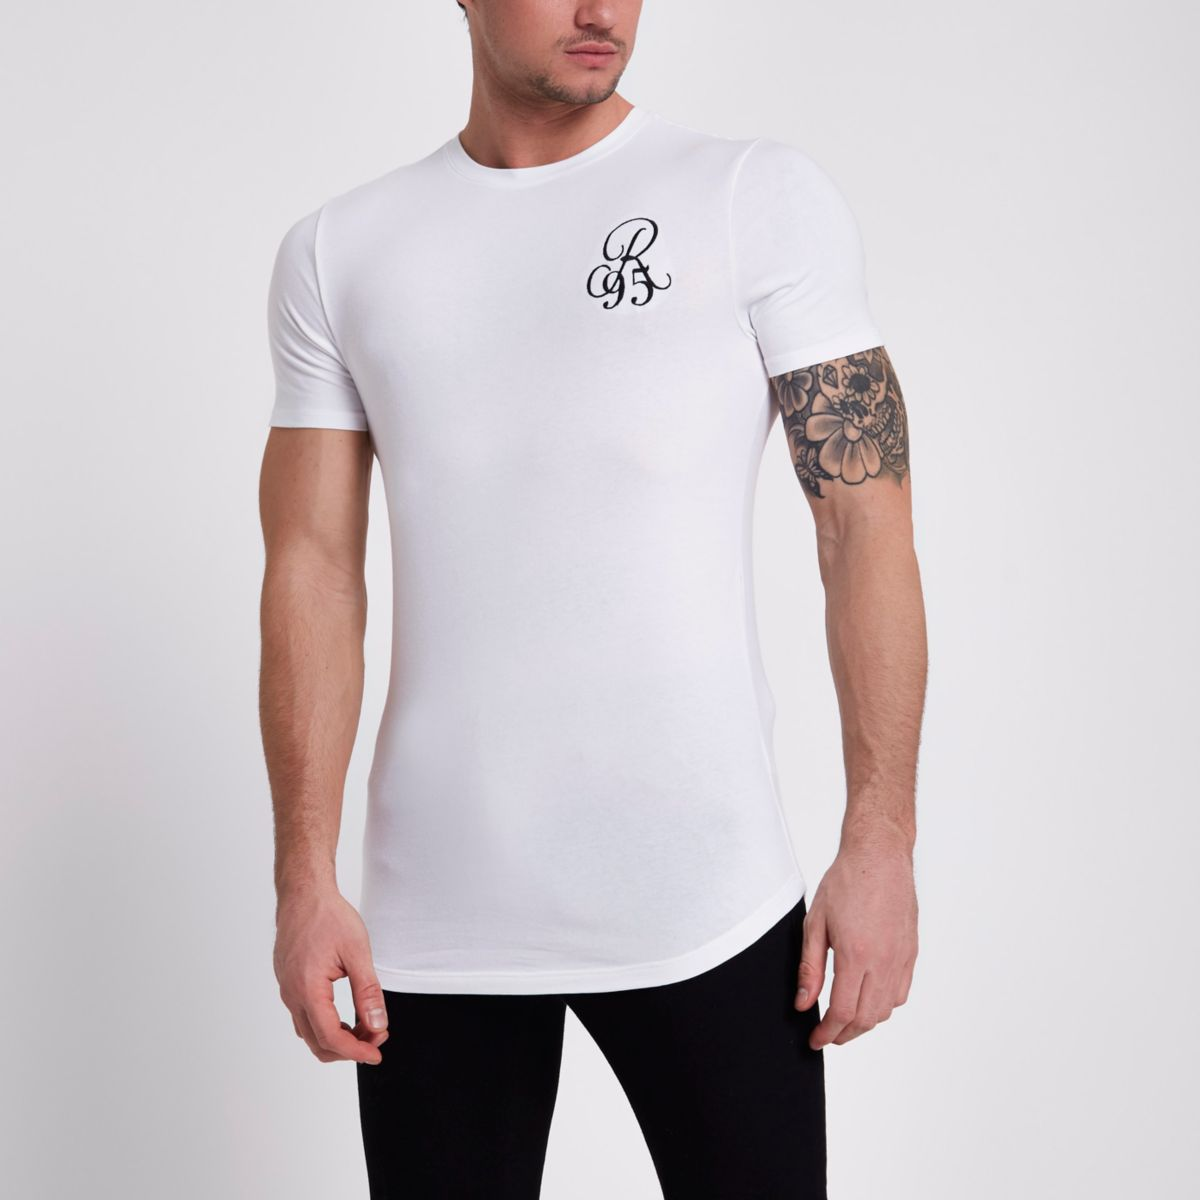 White muscle fit 'R95' T-shirt